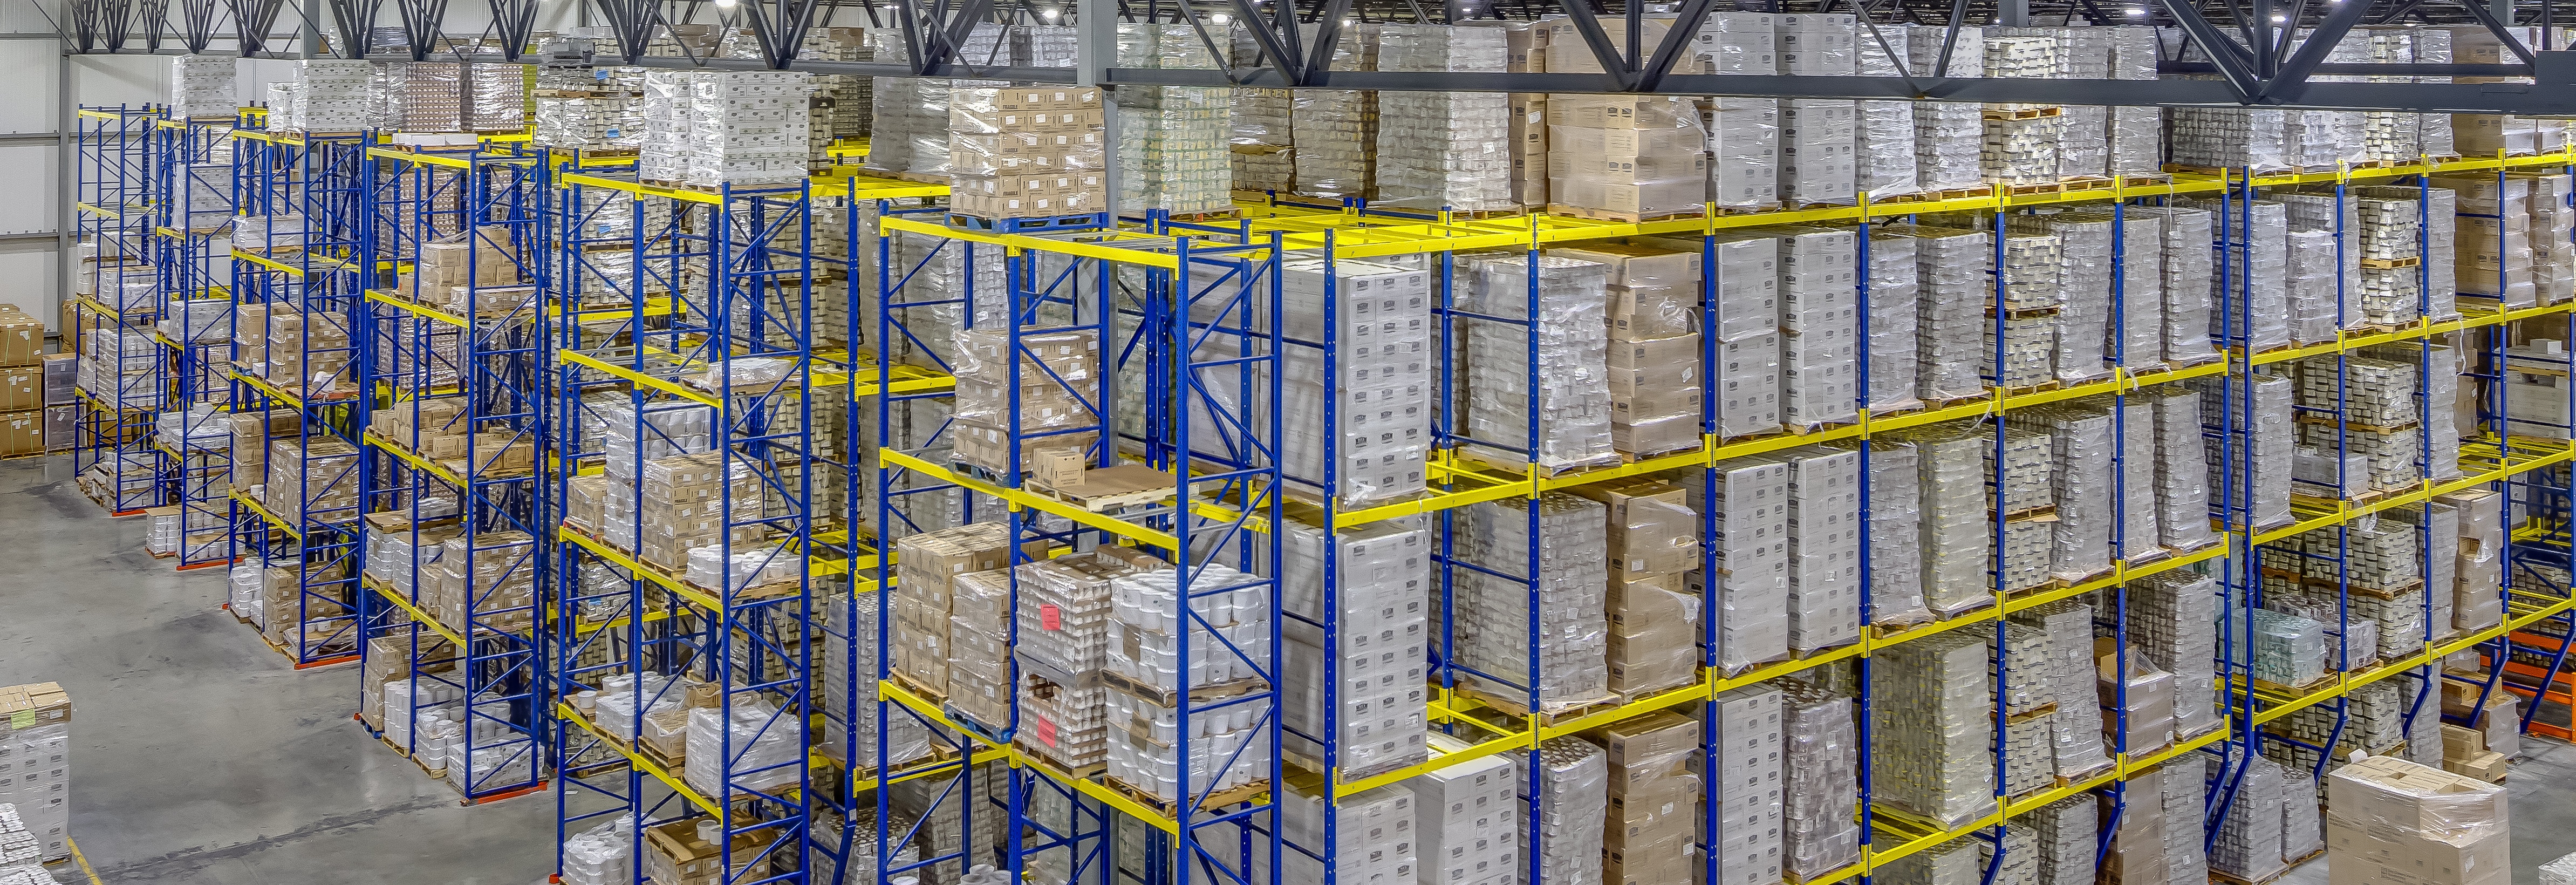 SnoTemp Cold Storage is a family owned and operated temperature controlled public warehousing company with two centrally located facilities along I-5 in ... & SnoTemp